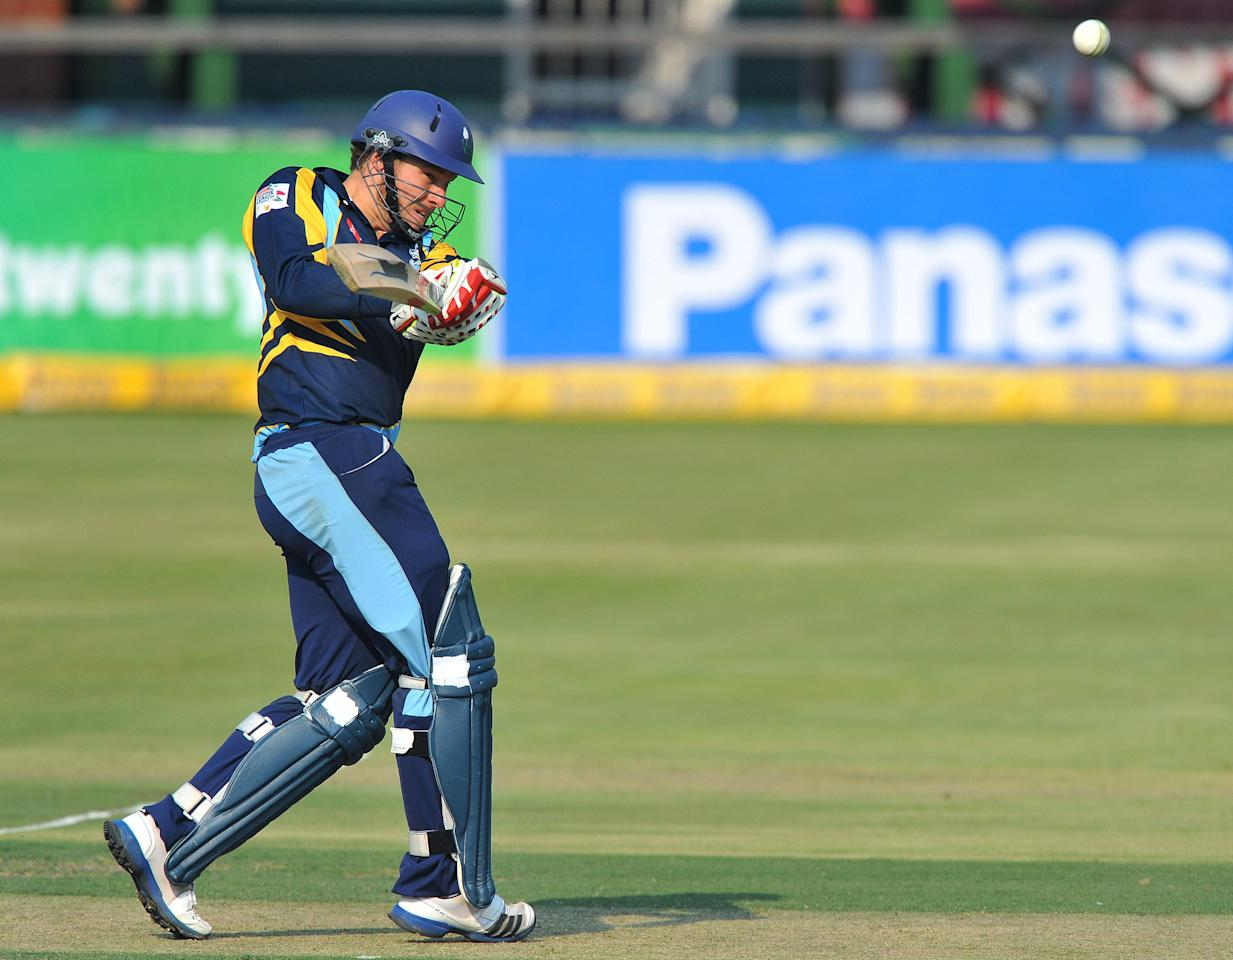 JOHANNESBURG, SOUTH AFRICA - OCTOBER 09:  David Miller of Yorkshire pulls a delivery during the Karbonn Smart CLT20 pre-tournament Qualifying Stage match between Yorkshire (England) and Uva Next (Sri Lanka) at Bidvest Wanderers Stadium on October 09, 2012 in Johannesburg, South Africa.  (Photo by Duif du Toit/Gallo Images/Getty Images)